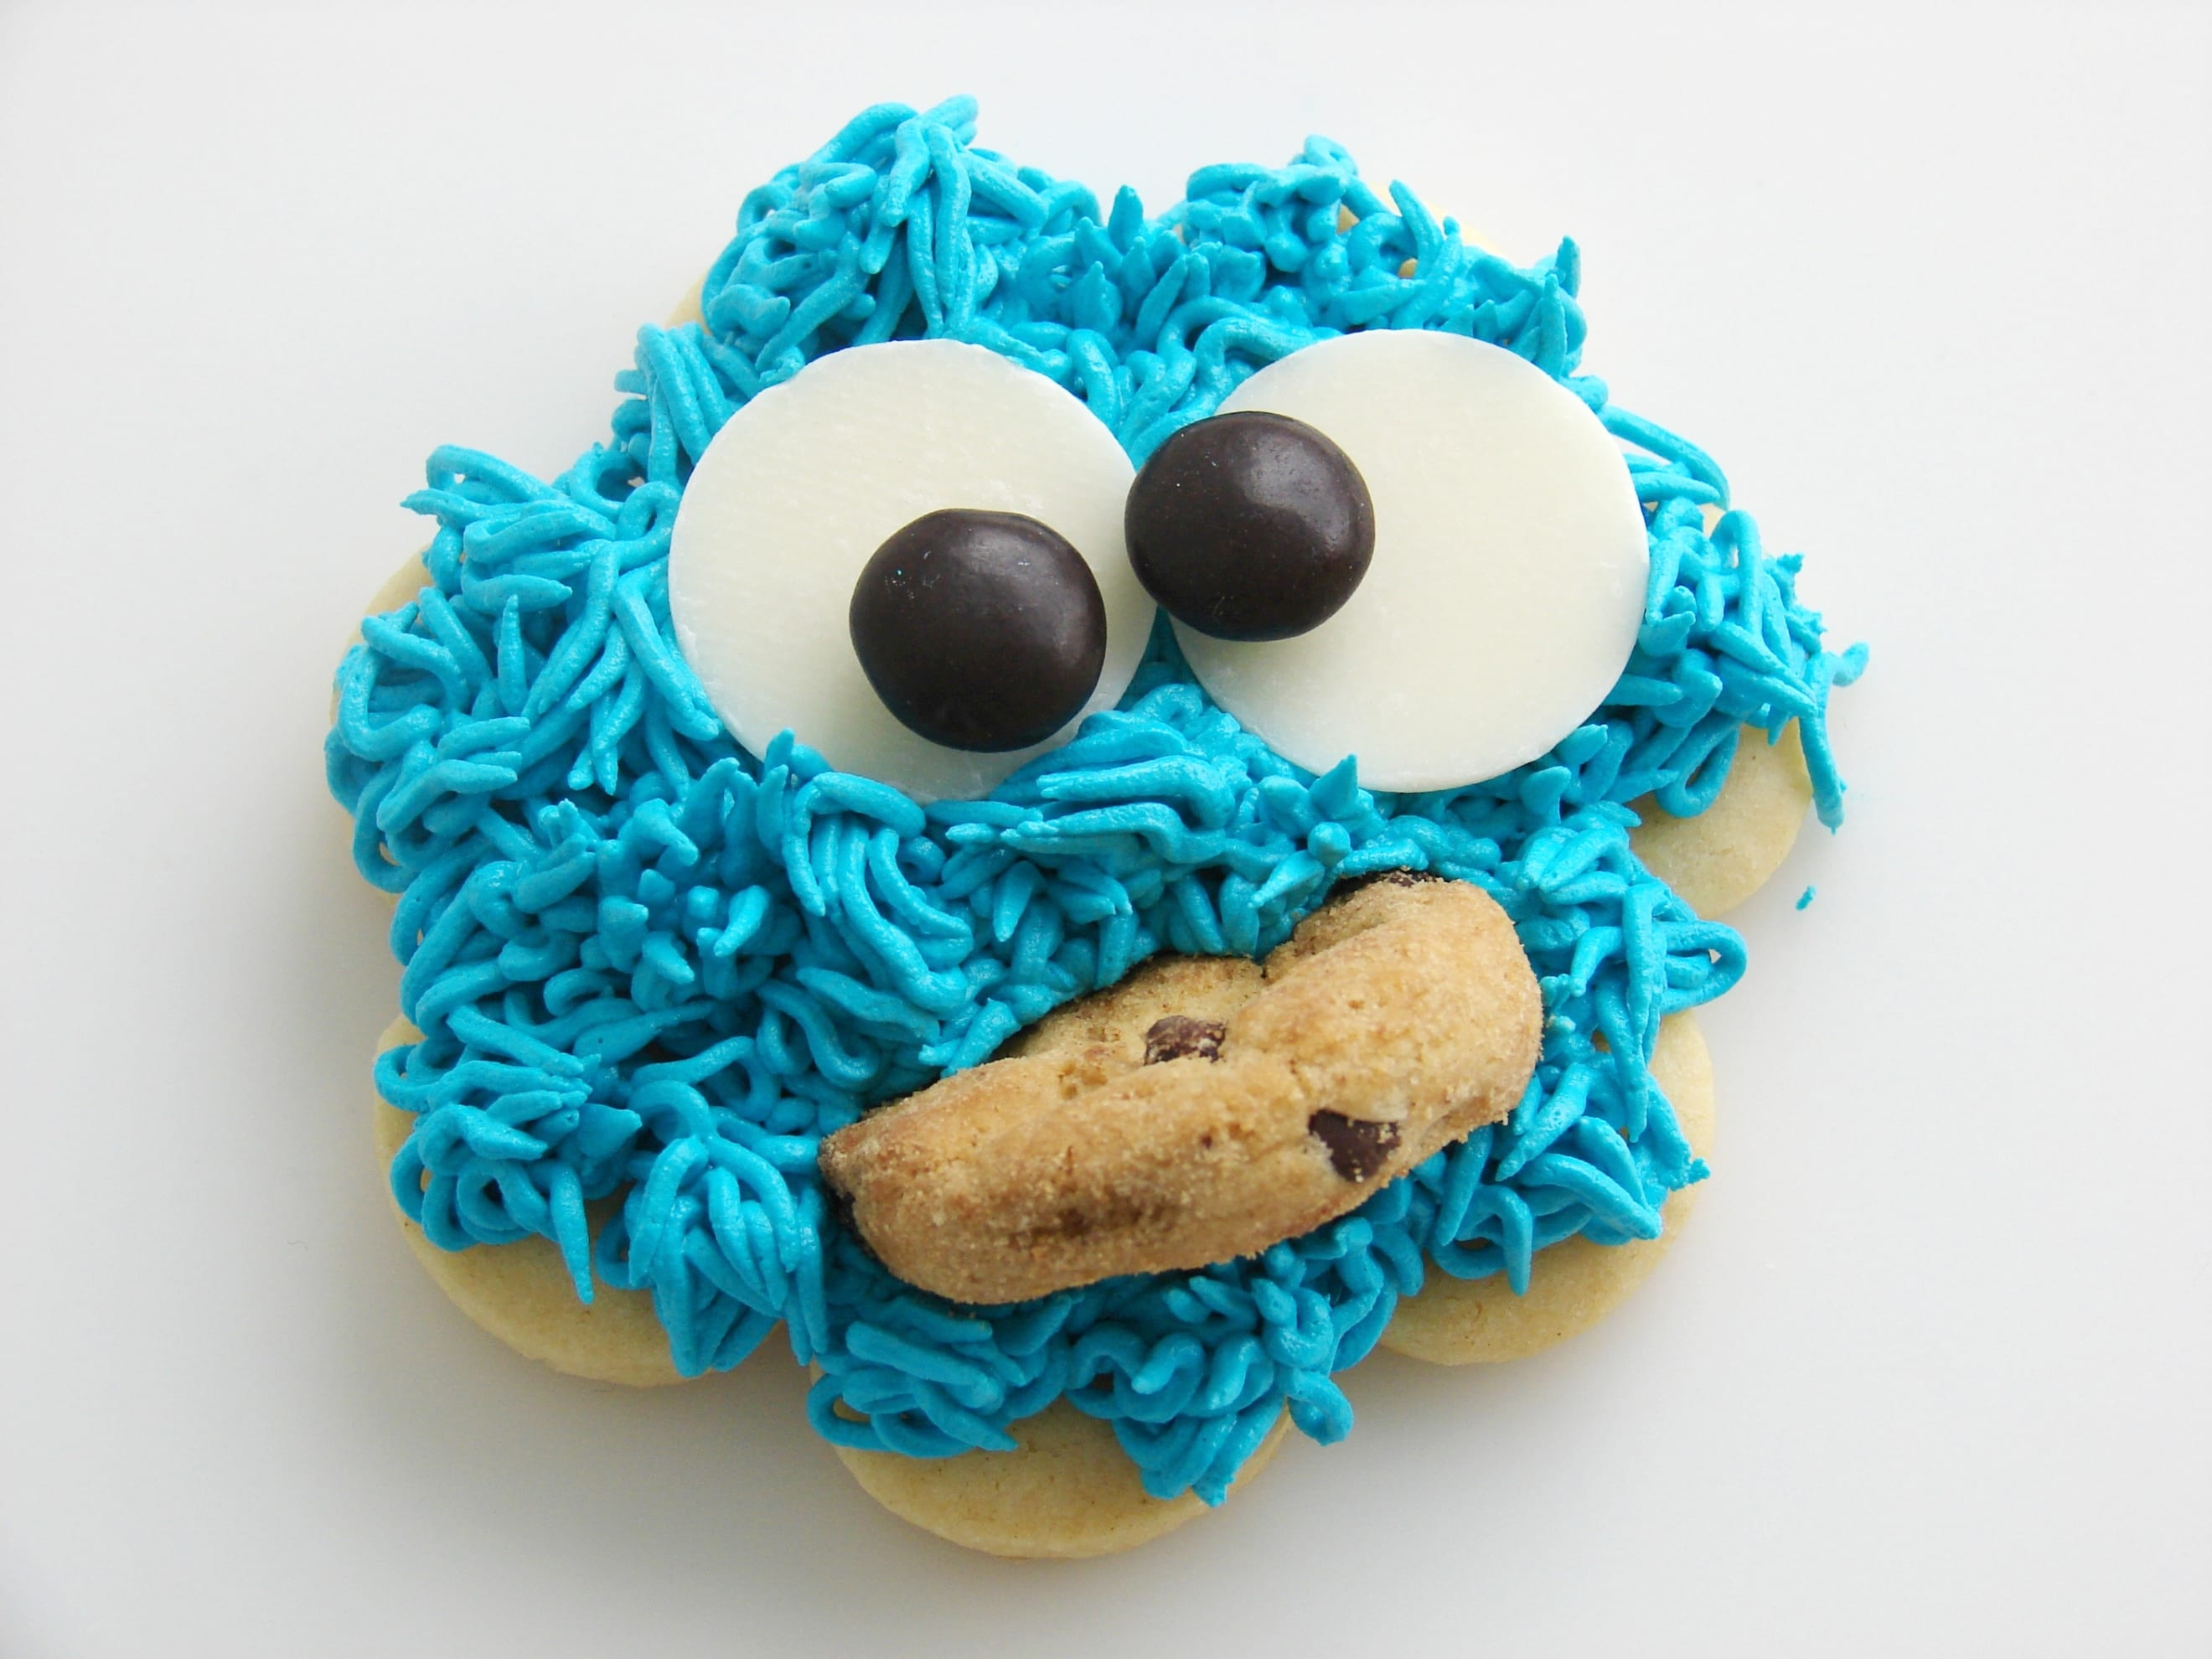 Monster cookie recipe with rice krispies